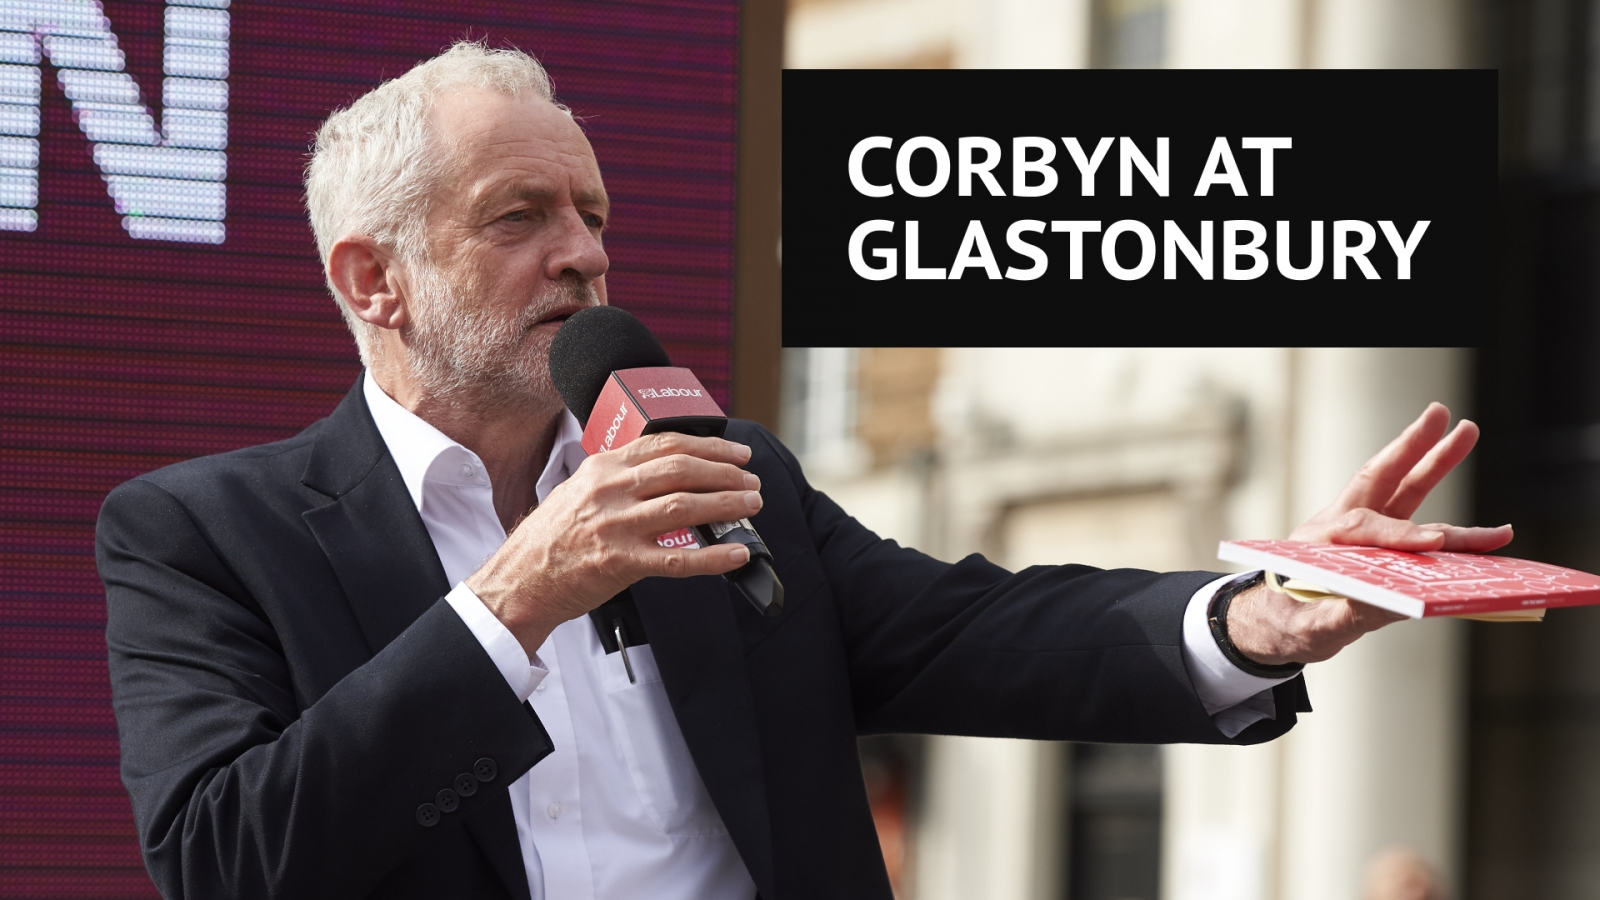 social-media-reacts-after-jeremy-corbyn-announced-to-introduce-run-the-jewels-at-glastonbury